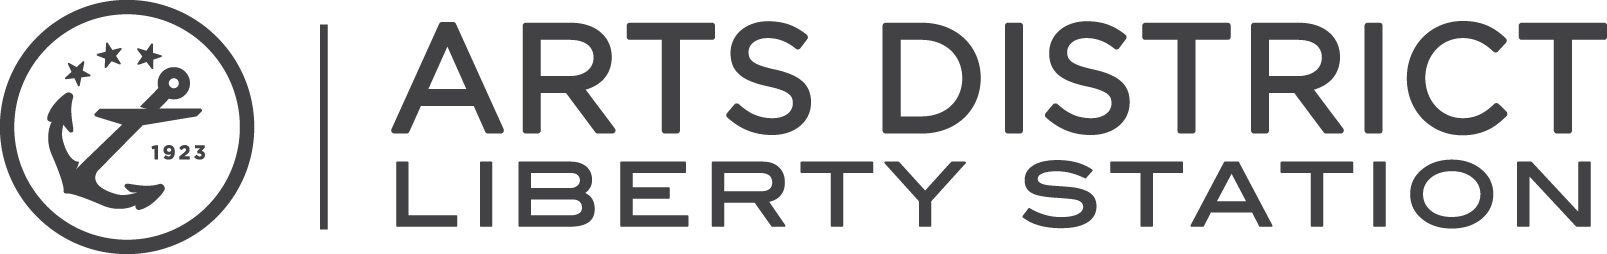 ARTS DISTRICT Liberty Station - Horizontal Full Logo Grey